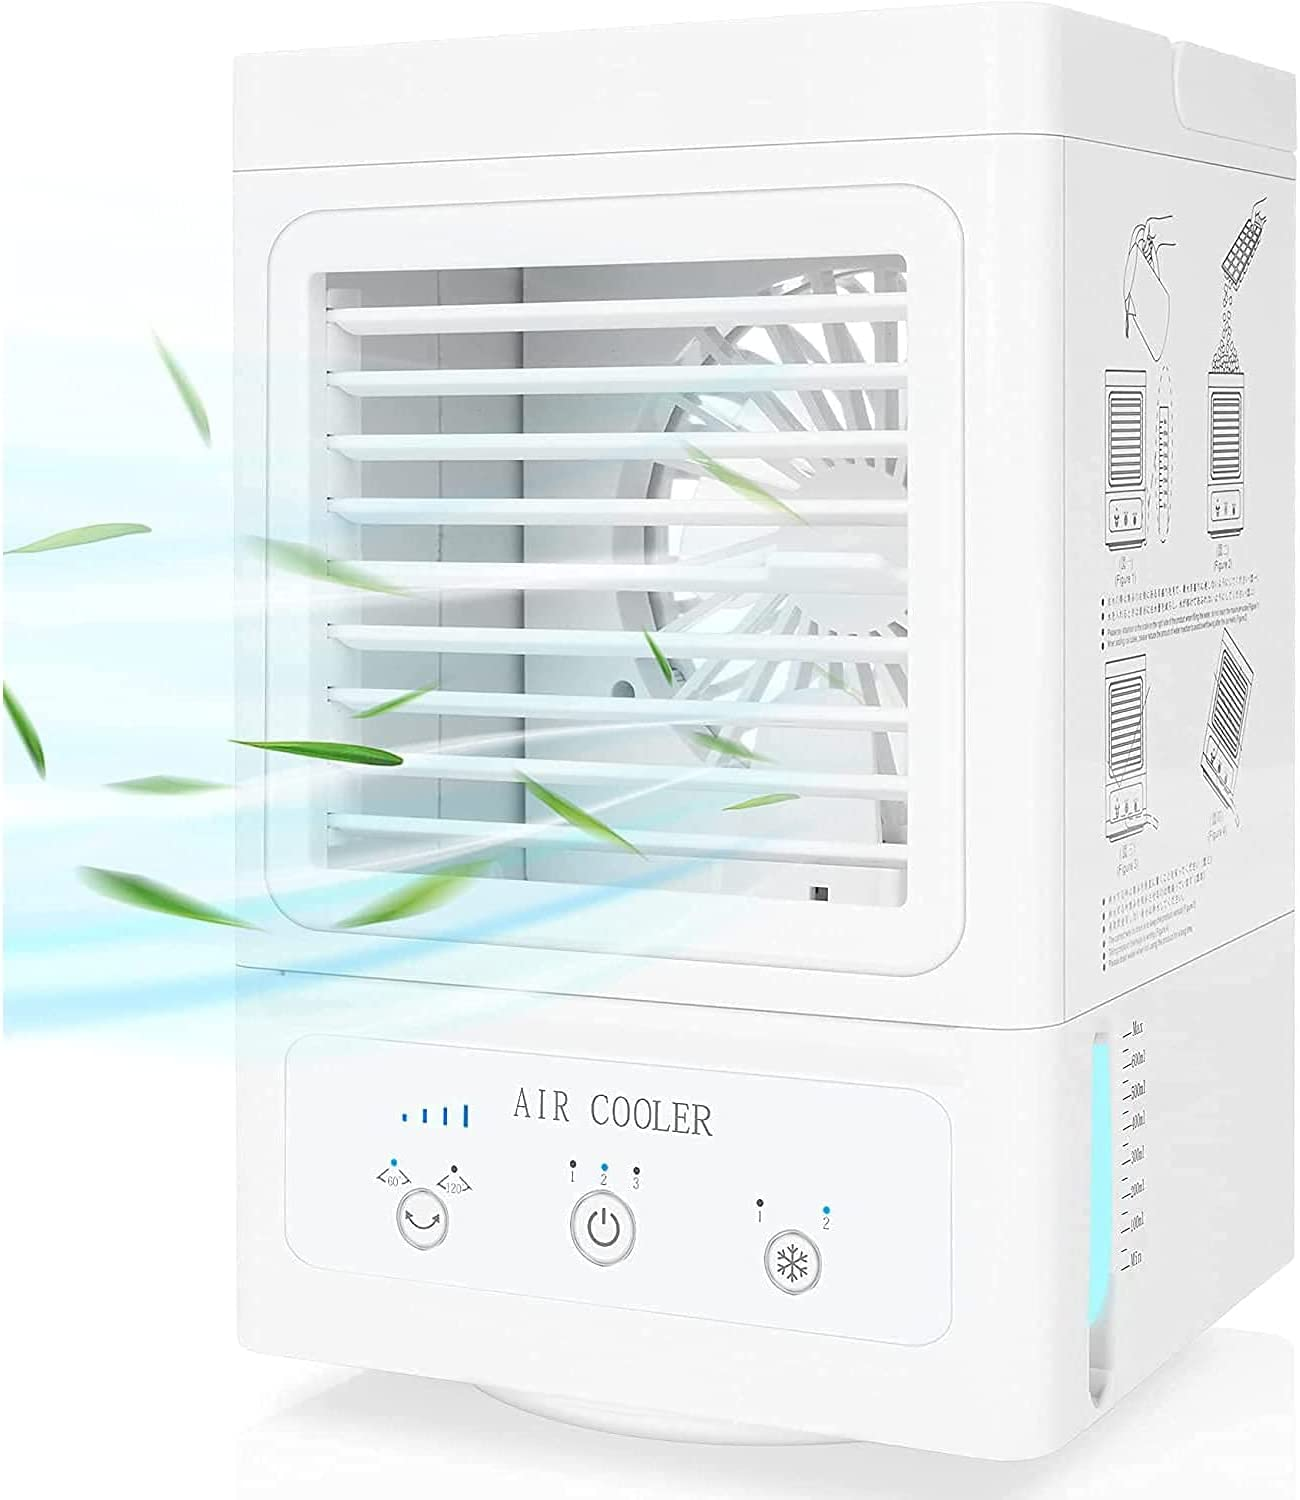 Portable Air Conditioner, 5000mAh Rechargeable Battery Auto Oscillation 700ml Water Tank Personal Mini Air Cooler with 3 Wind Speeds, 3 Cooling Levels, Perfect for Office Desk, Dorm, Bedroom and Outdoors